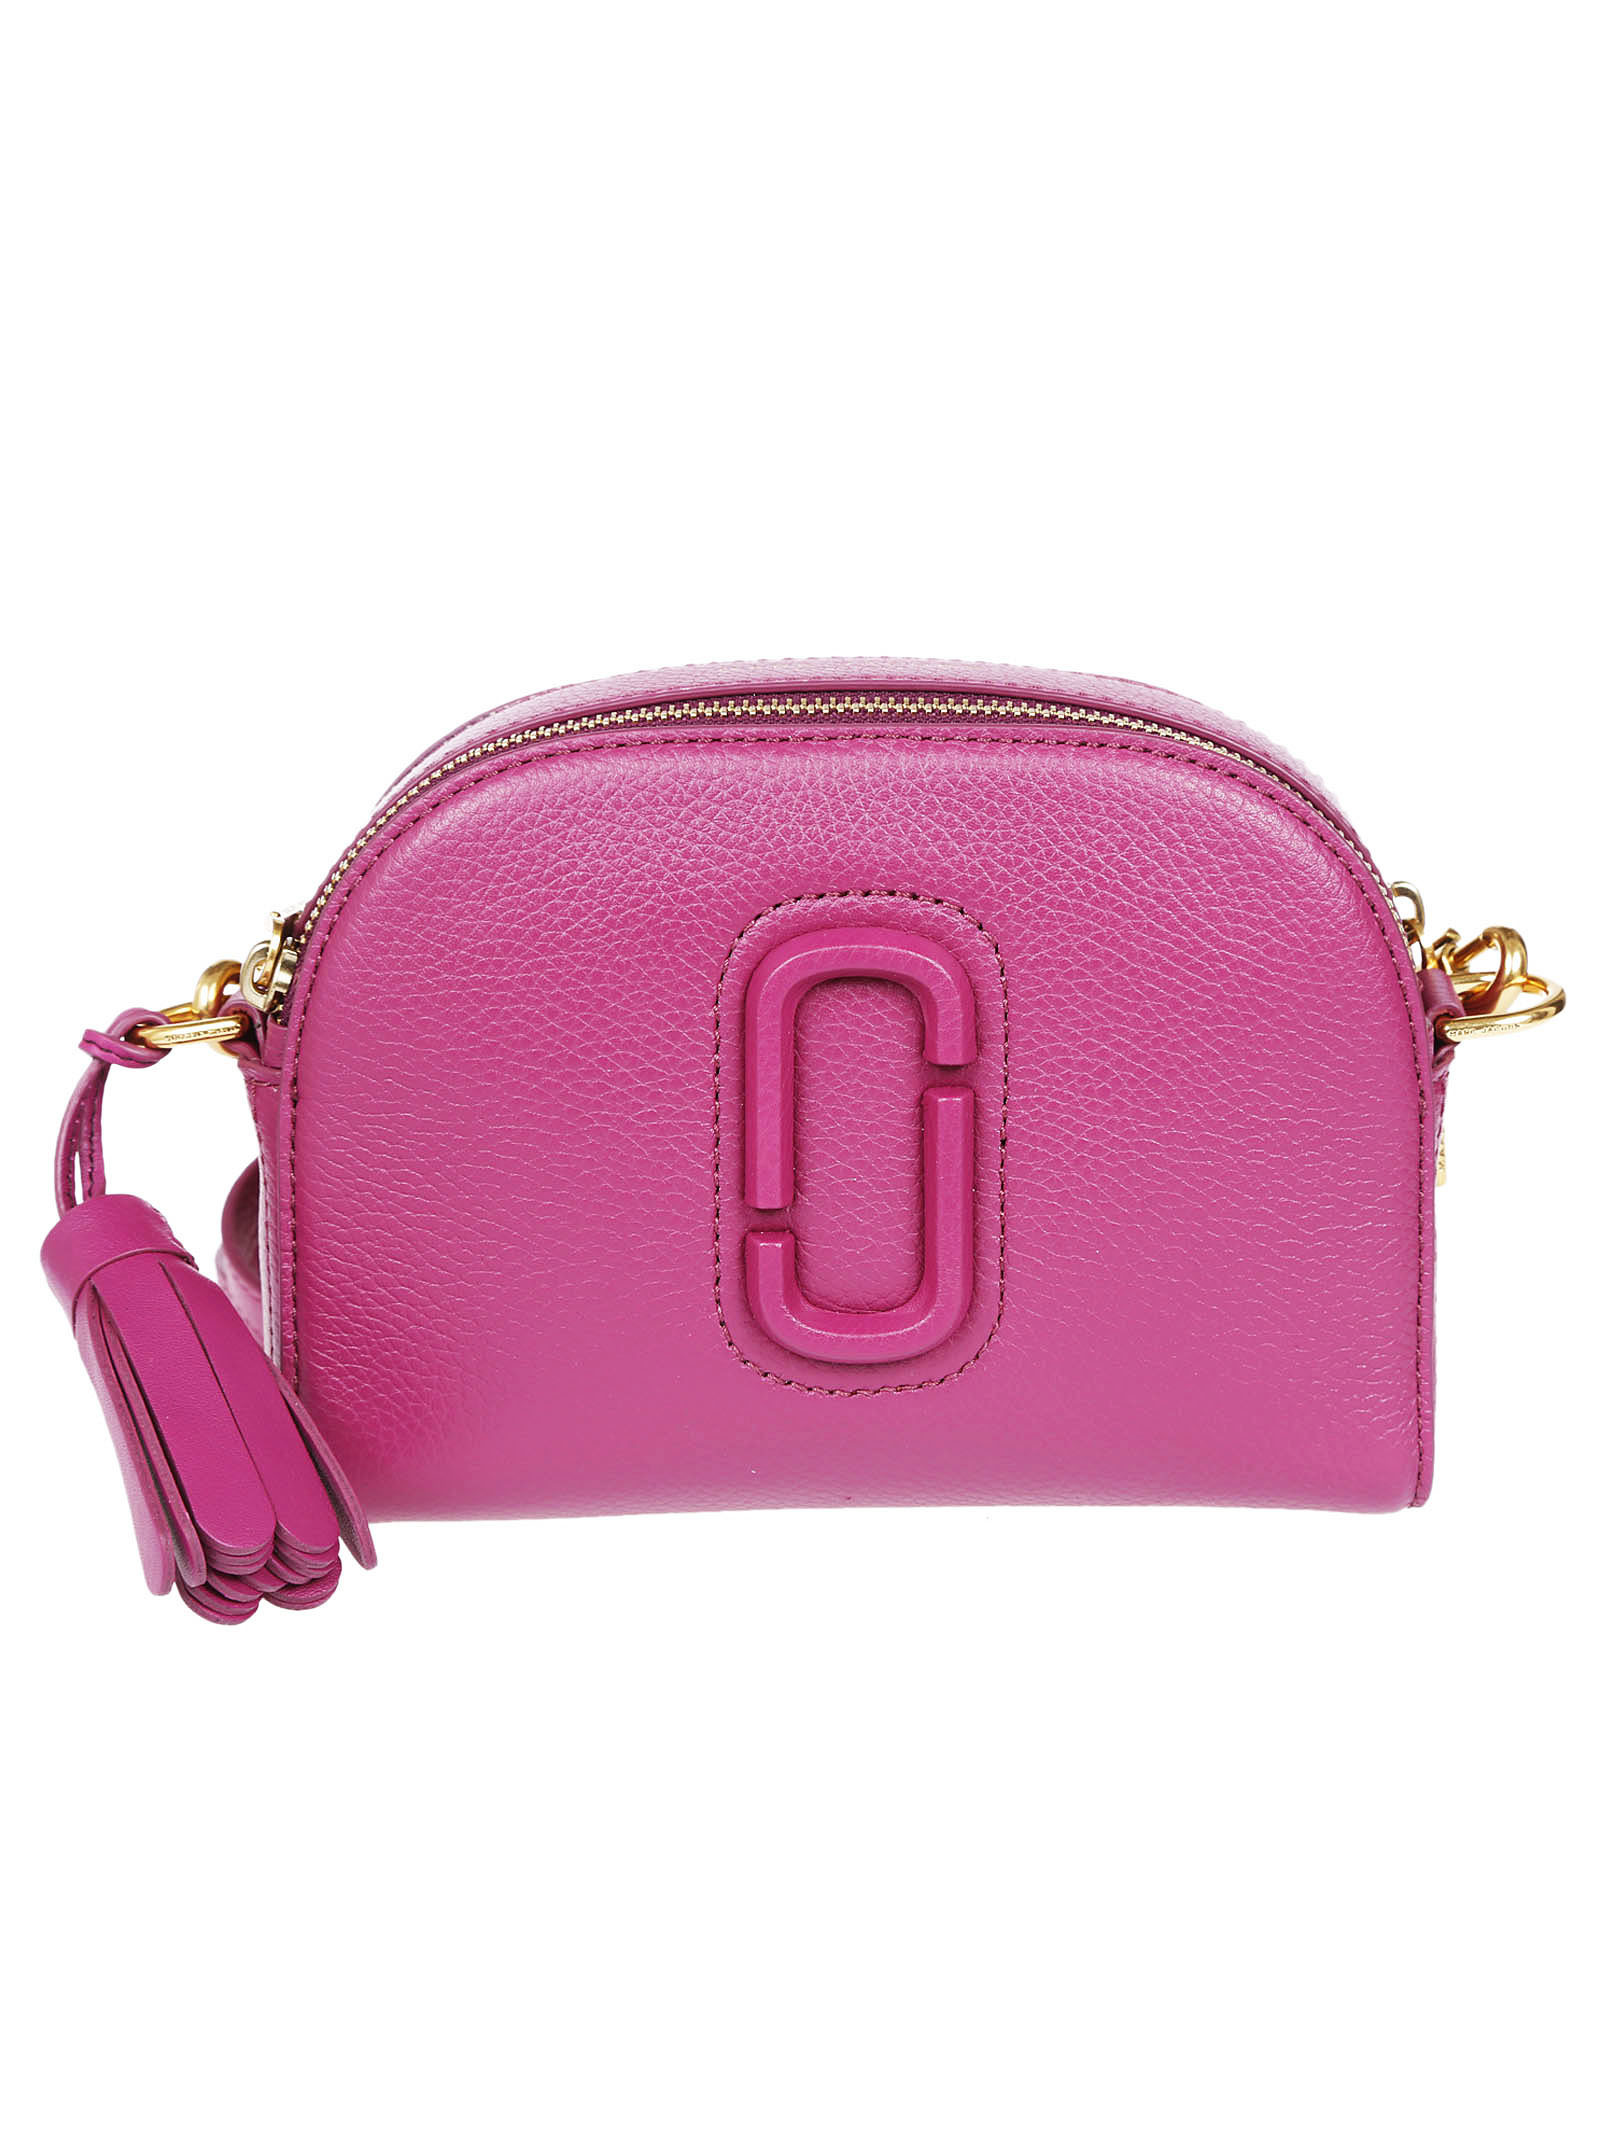 marc jacobs female marc jacobs small shutter shoulder bag